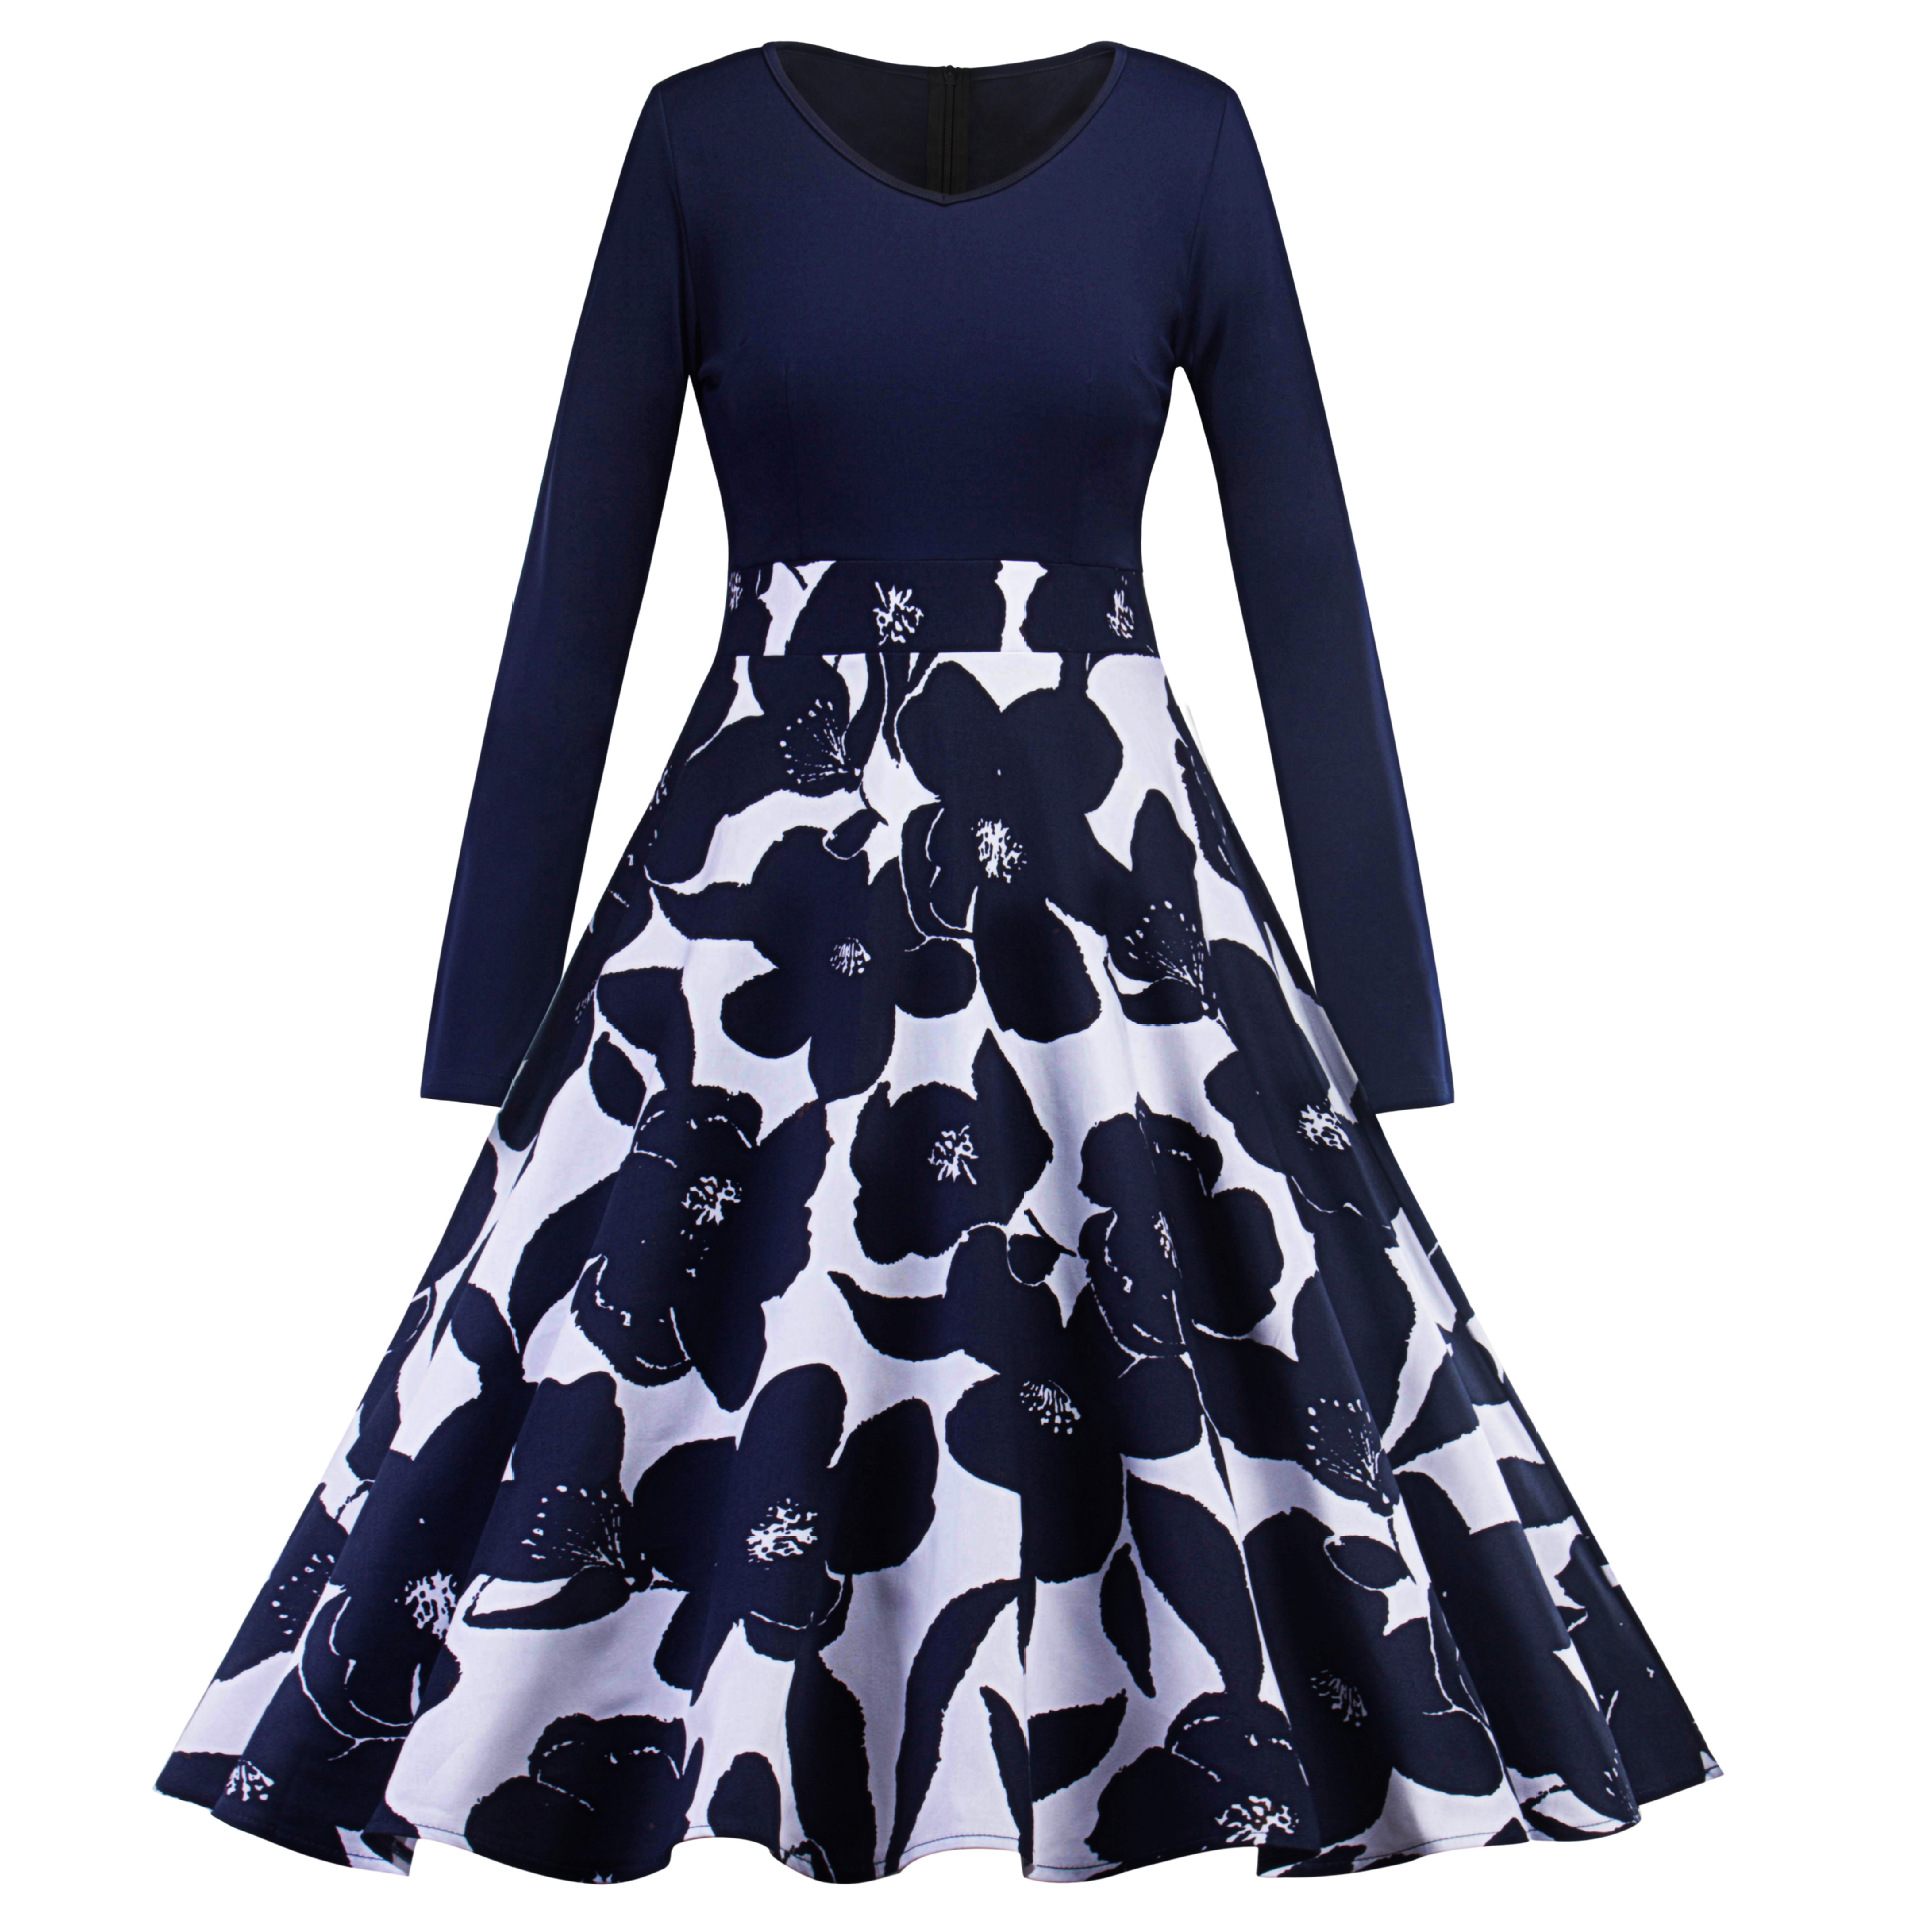 2020 Sexy V Neck Navy Blue Flower Elegant Women Cocktail Dress Elegant Long Sleeve Plus Size Women Dress Robe De Cocktail